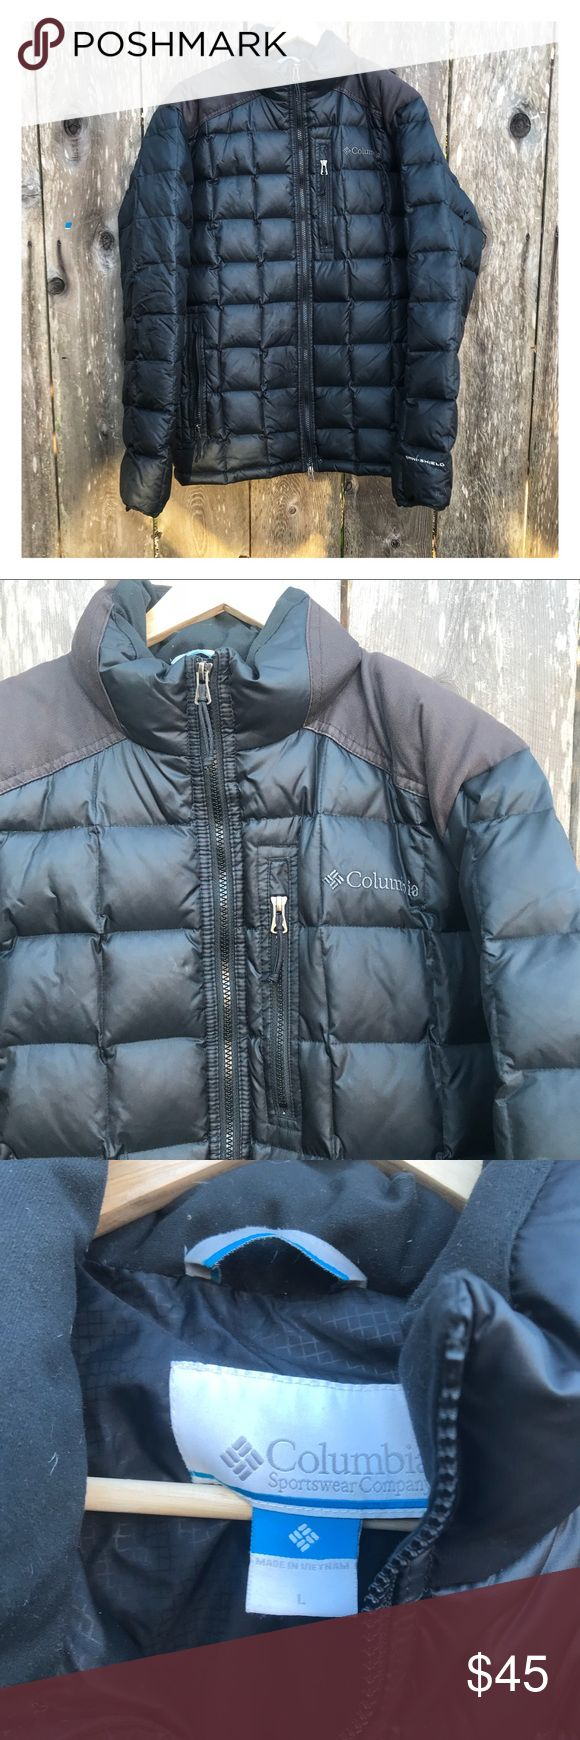 Columbia Sportswear Men's Large Winter Jacket used Men's large Columbia sportswear jacket in black. Pre worn. See all photos for details. There's some marks on the upper back but can probably be able to get out easily. Free gifts with every purchase. Bundle and save. columbia Jackets & Coats Performance Jackets